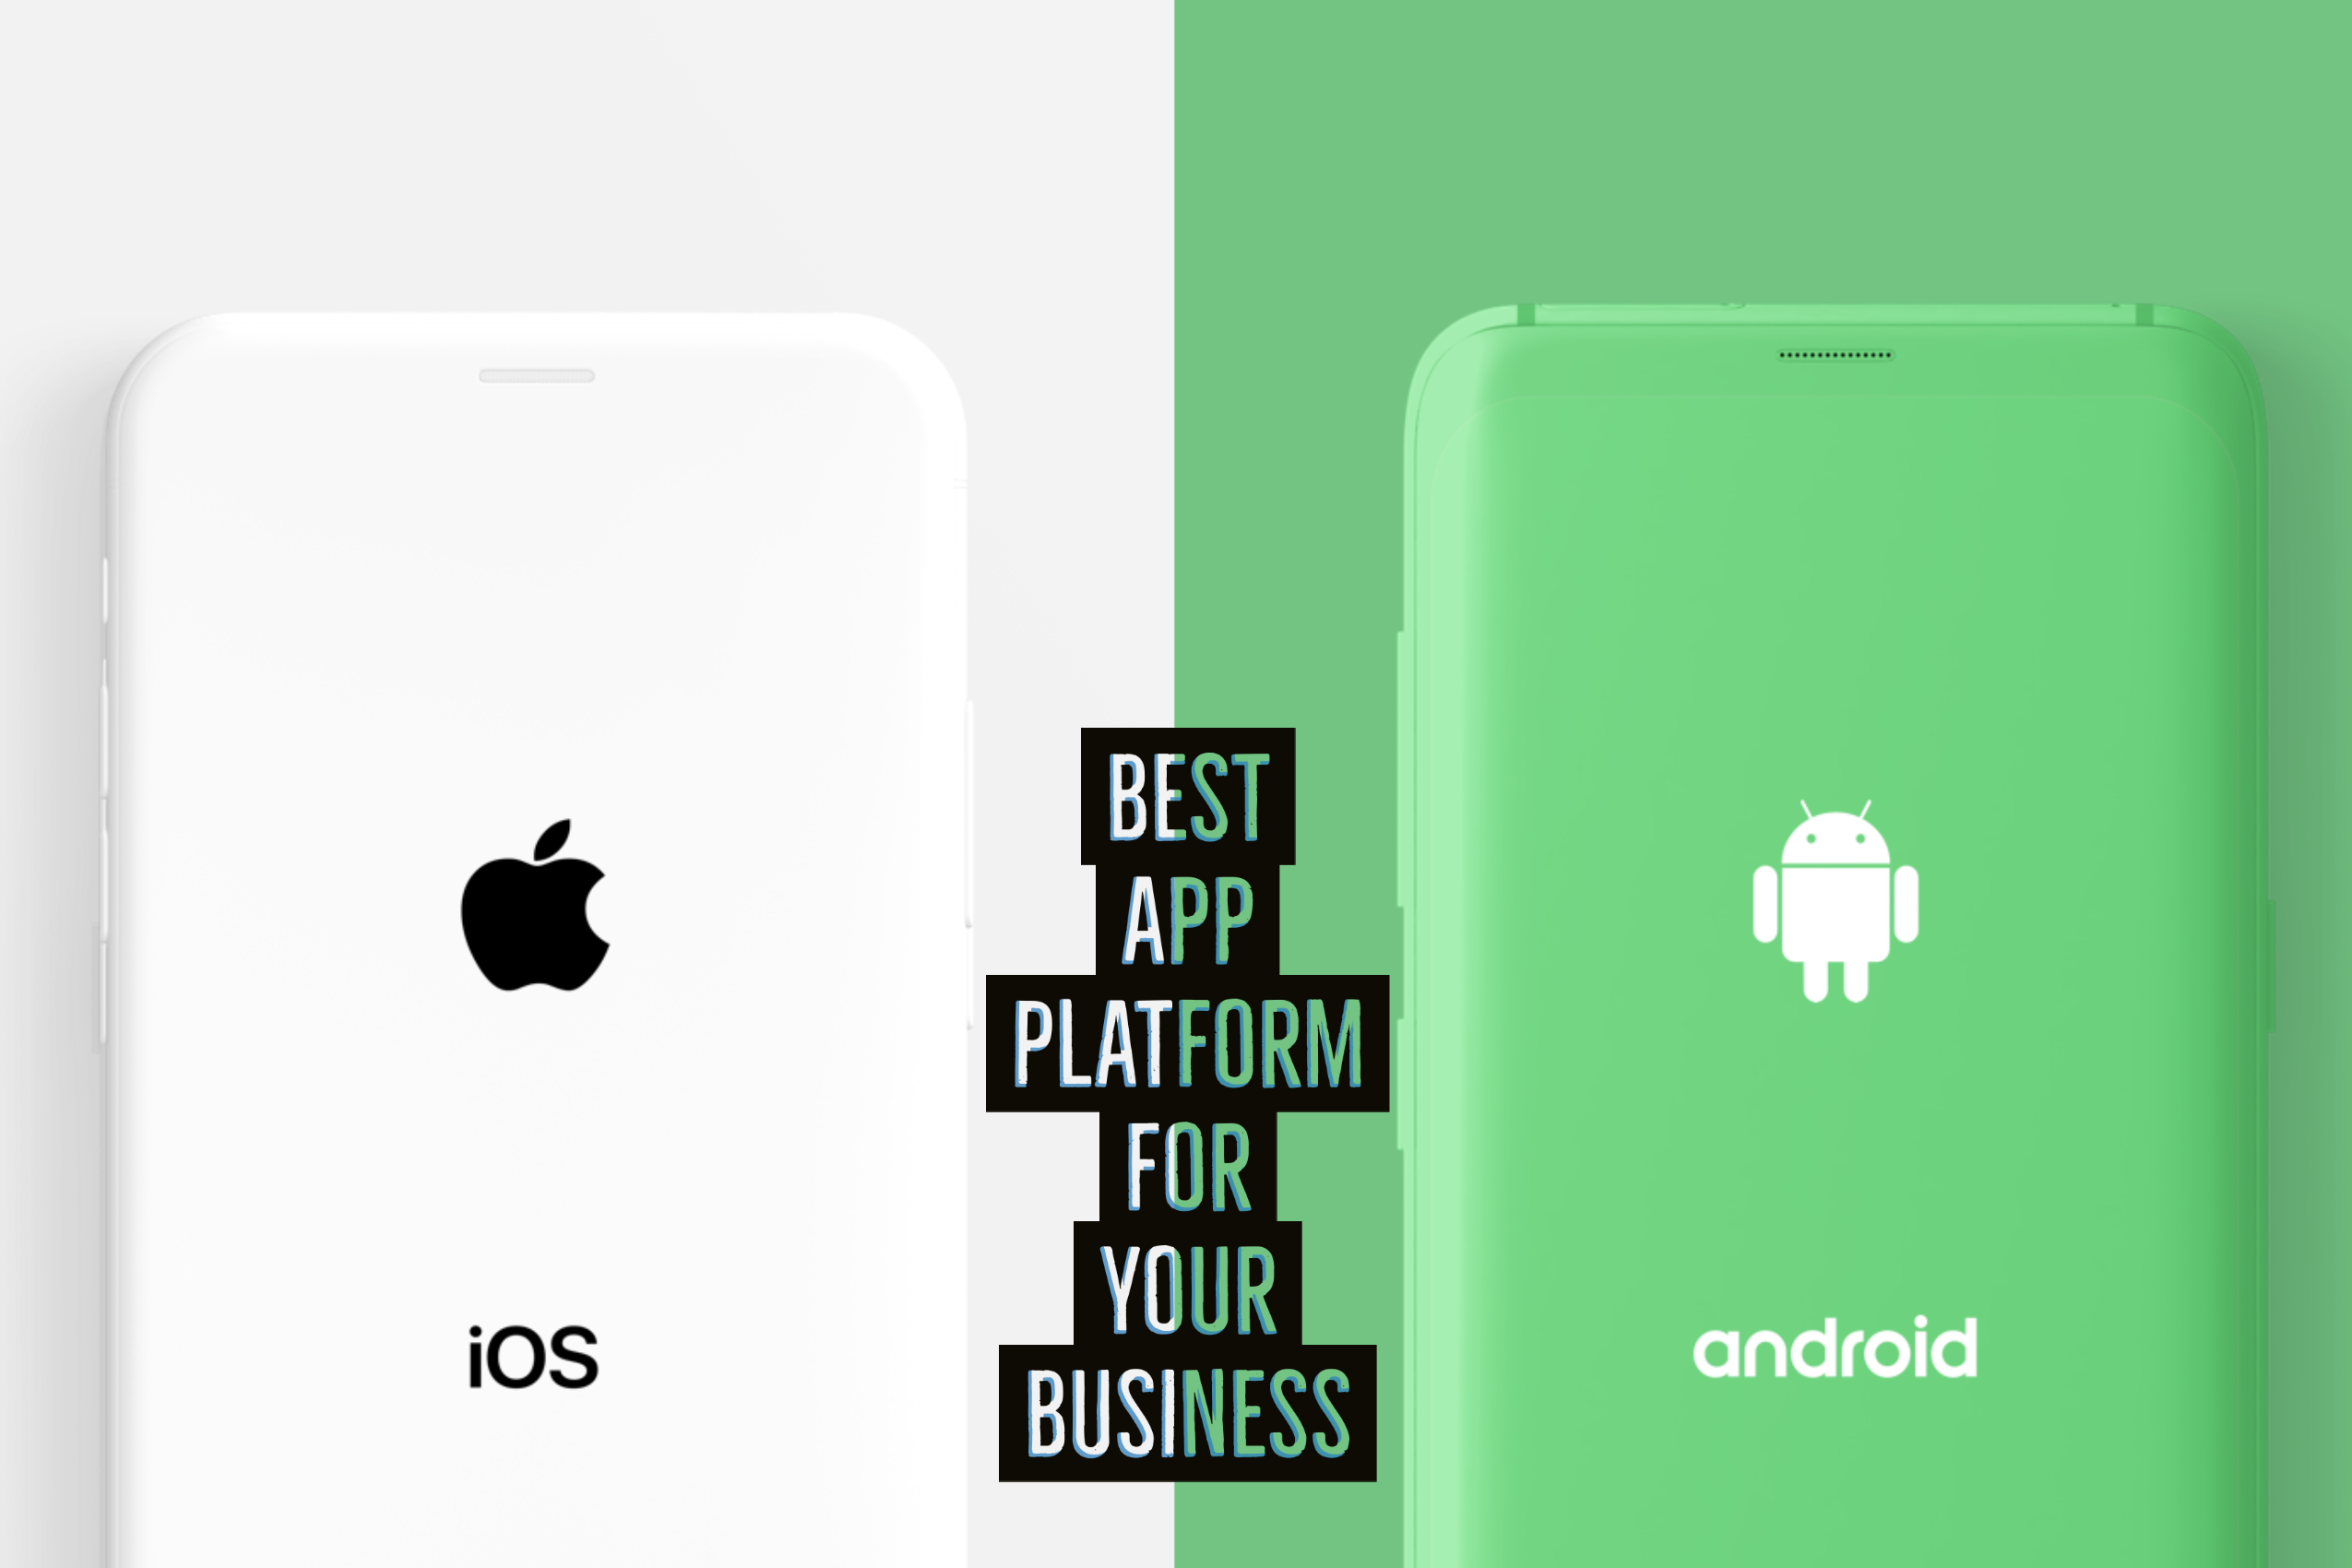 Best App Platform For Your Business